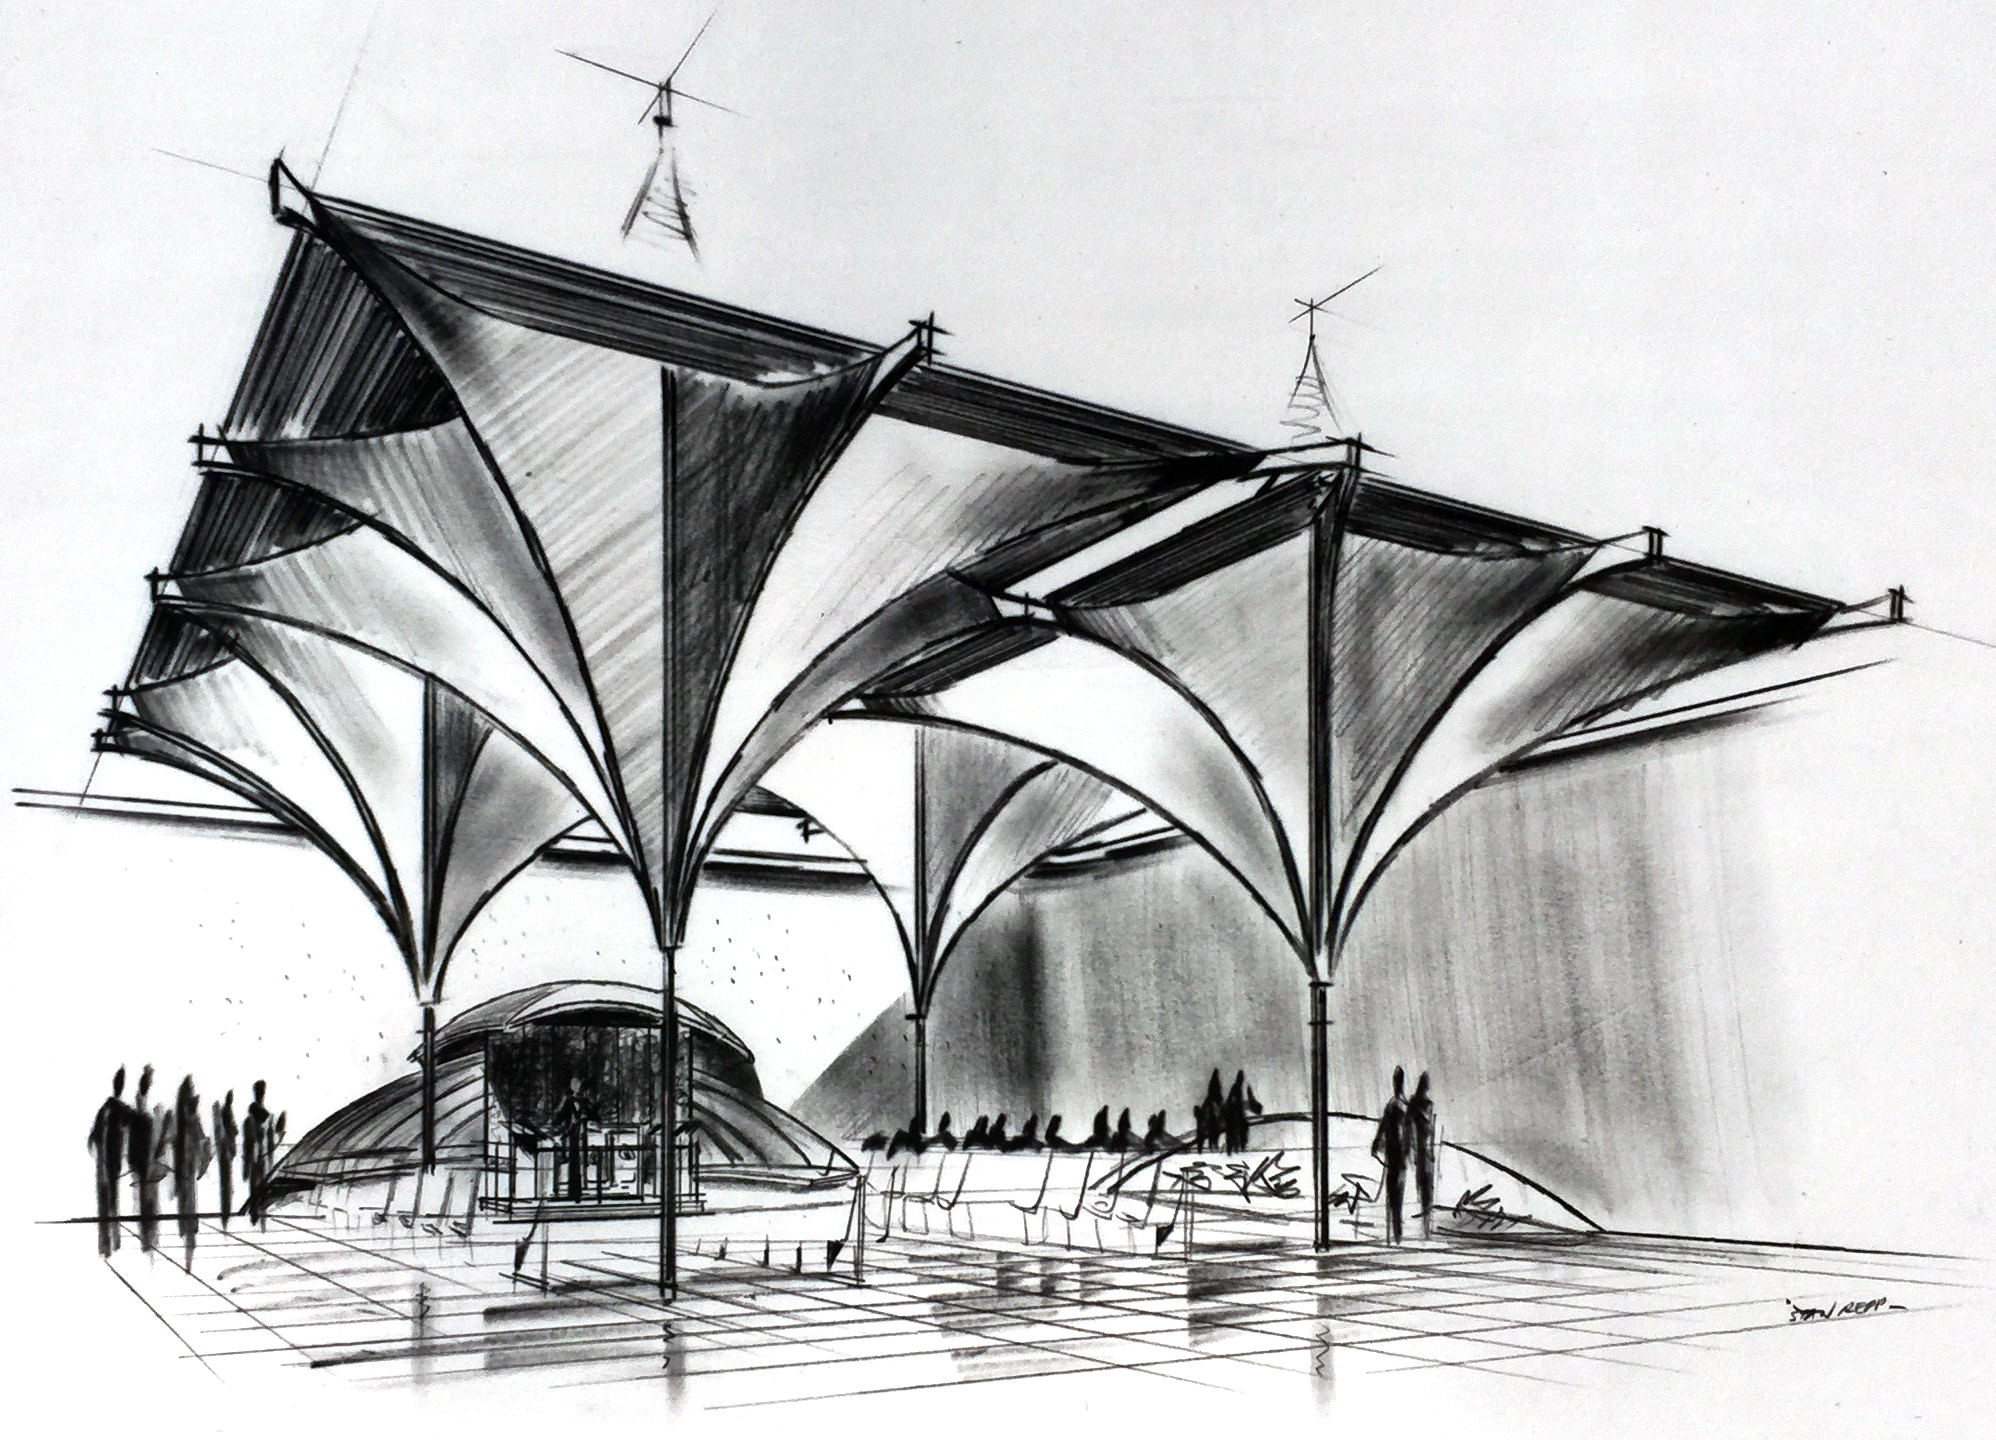 Smith and Williams, Architects and Engineers. Congregational Church, California City. 1961.Architecture and Design Collection, University Art Museum, UCSB.